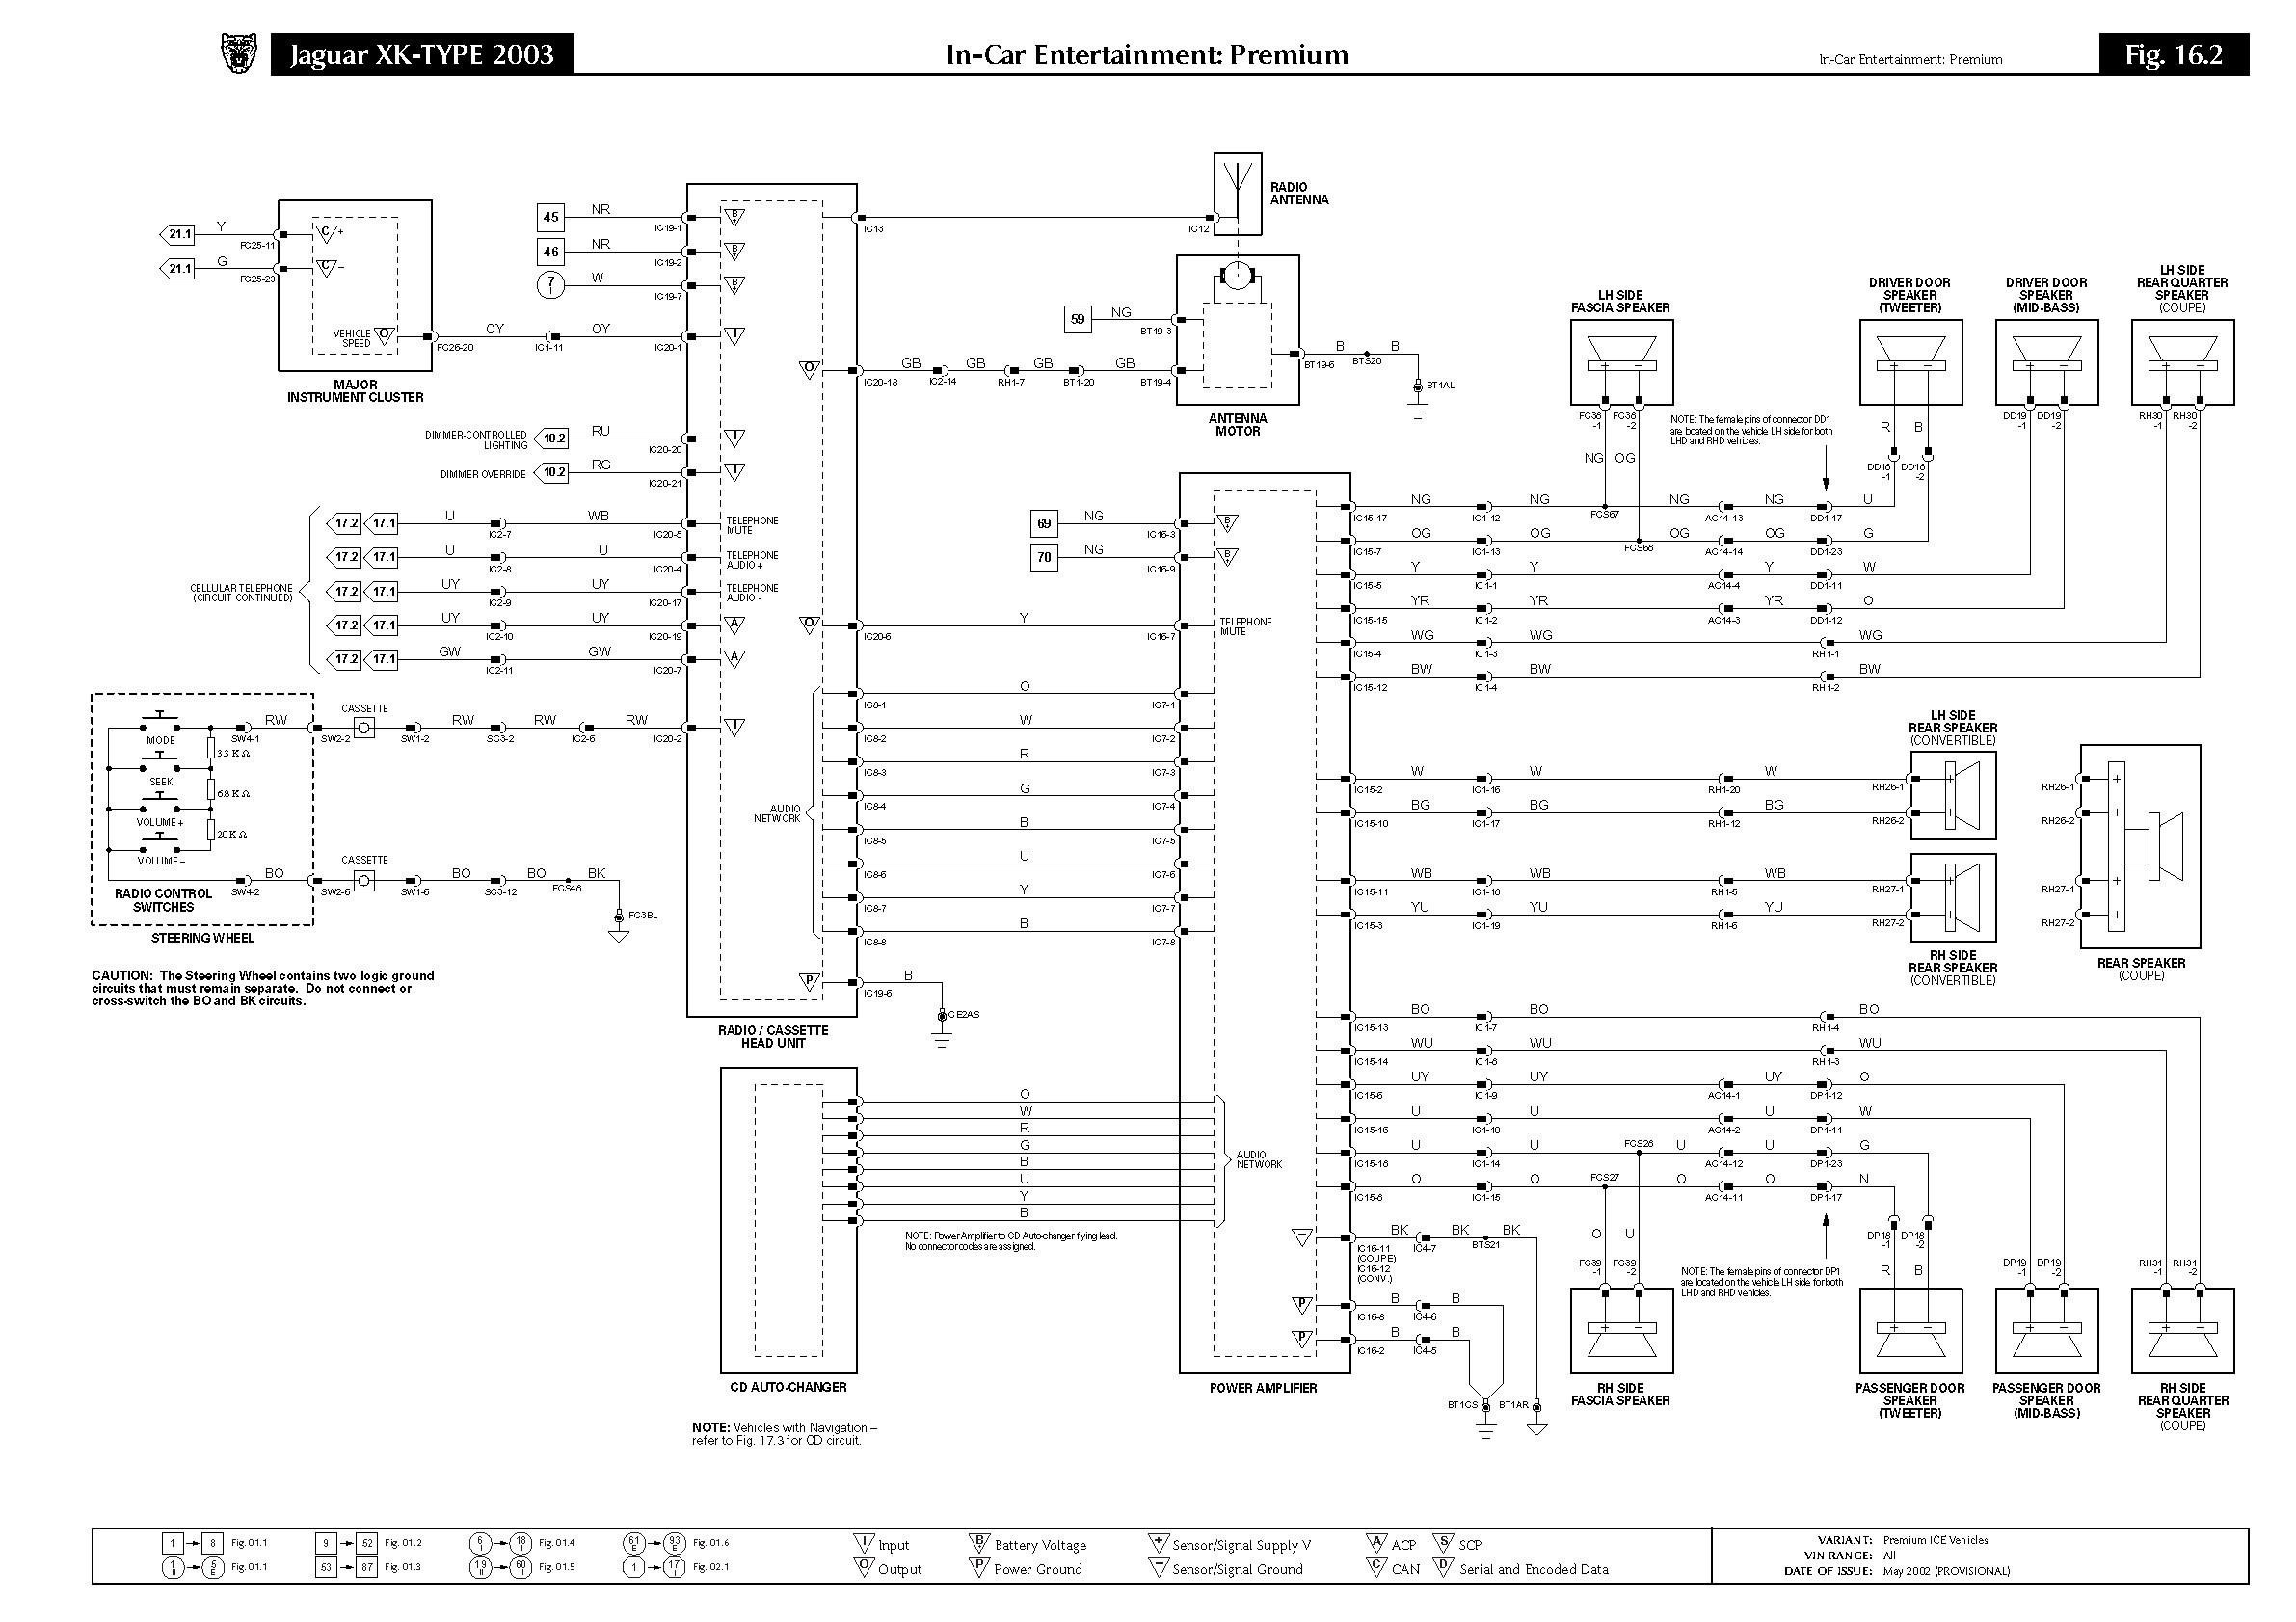 1997 Jaguar Xk8 Wiring Harness Diagram - Wiring Diagram M2 on